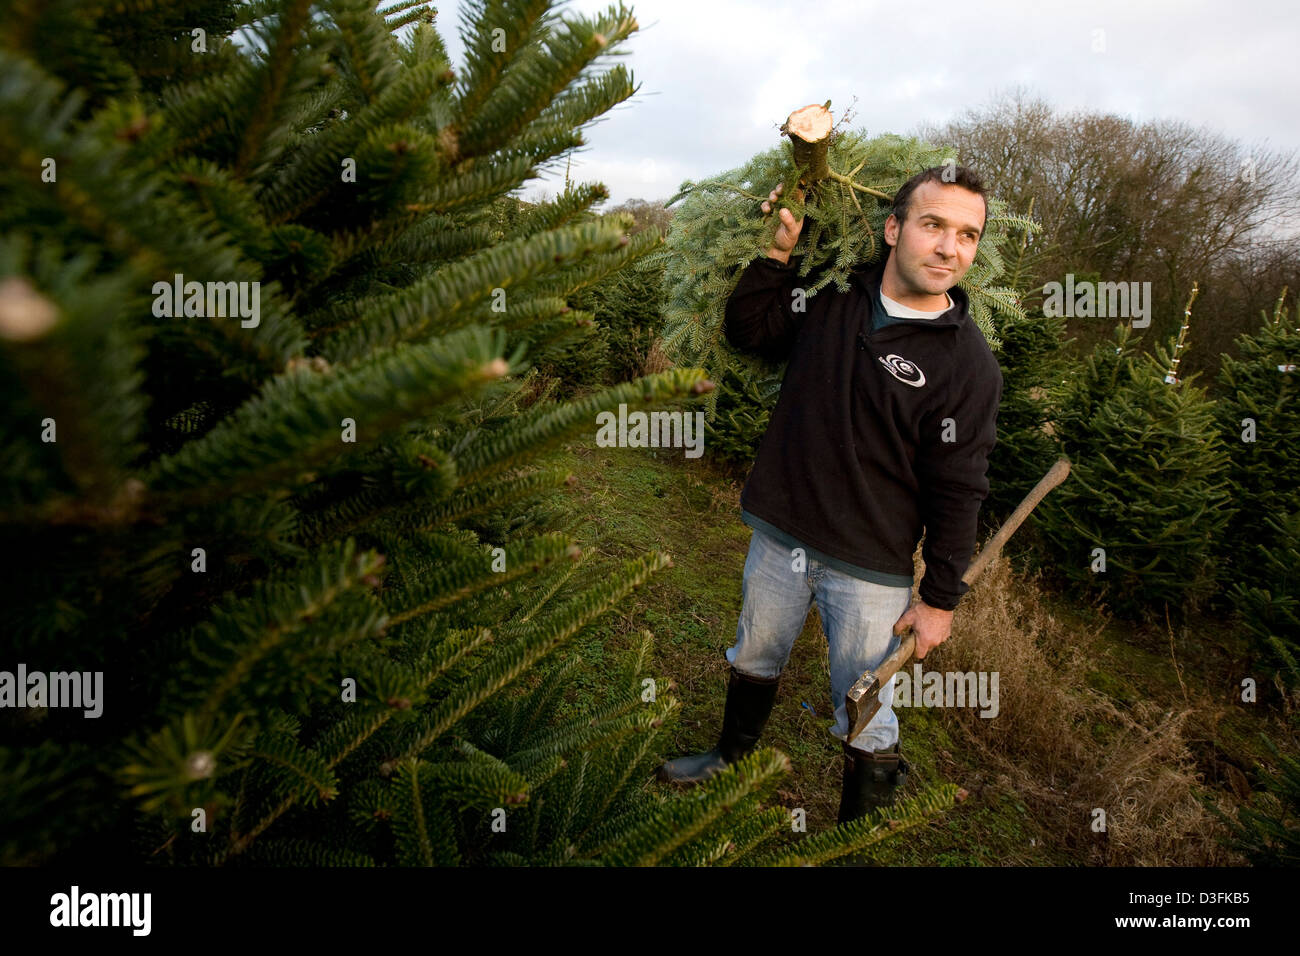 26 11 08 Robert Morgan Of Poundffald Farm Three Crosses Gower With Stock Photo Alamy